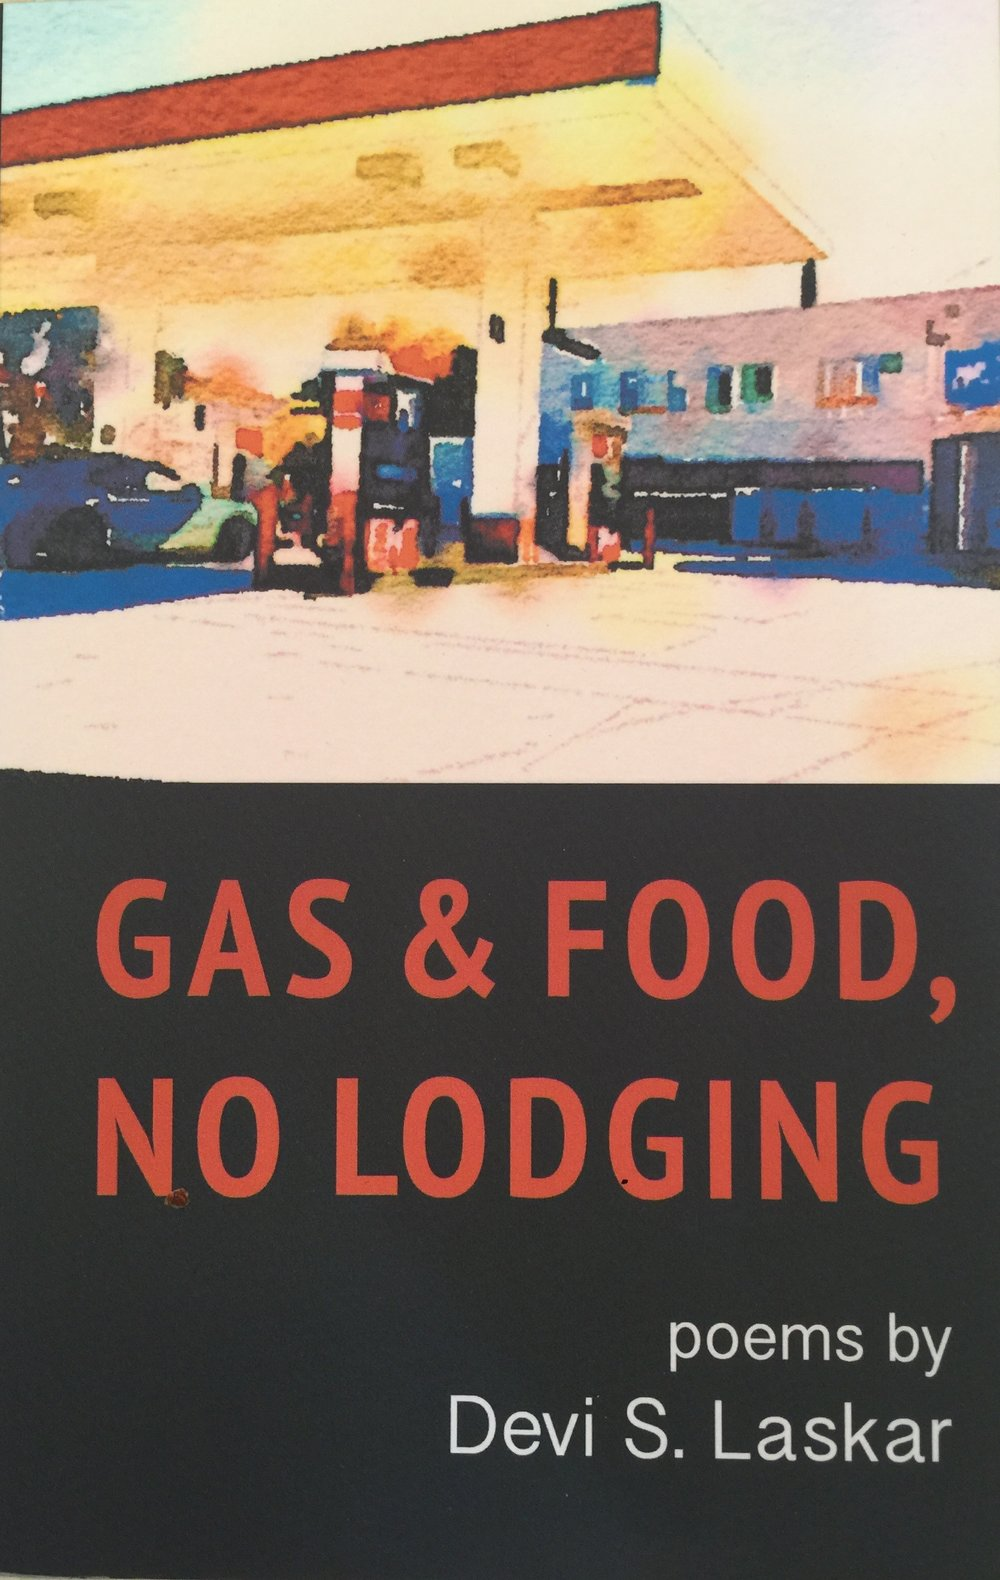 Gas & Food, No Lodging